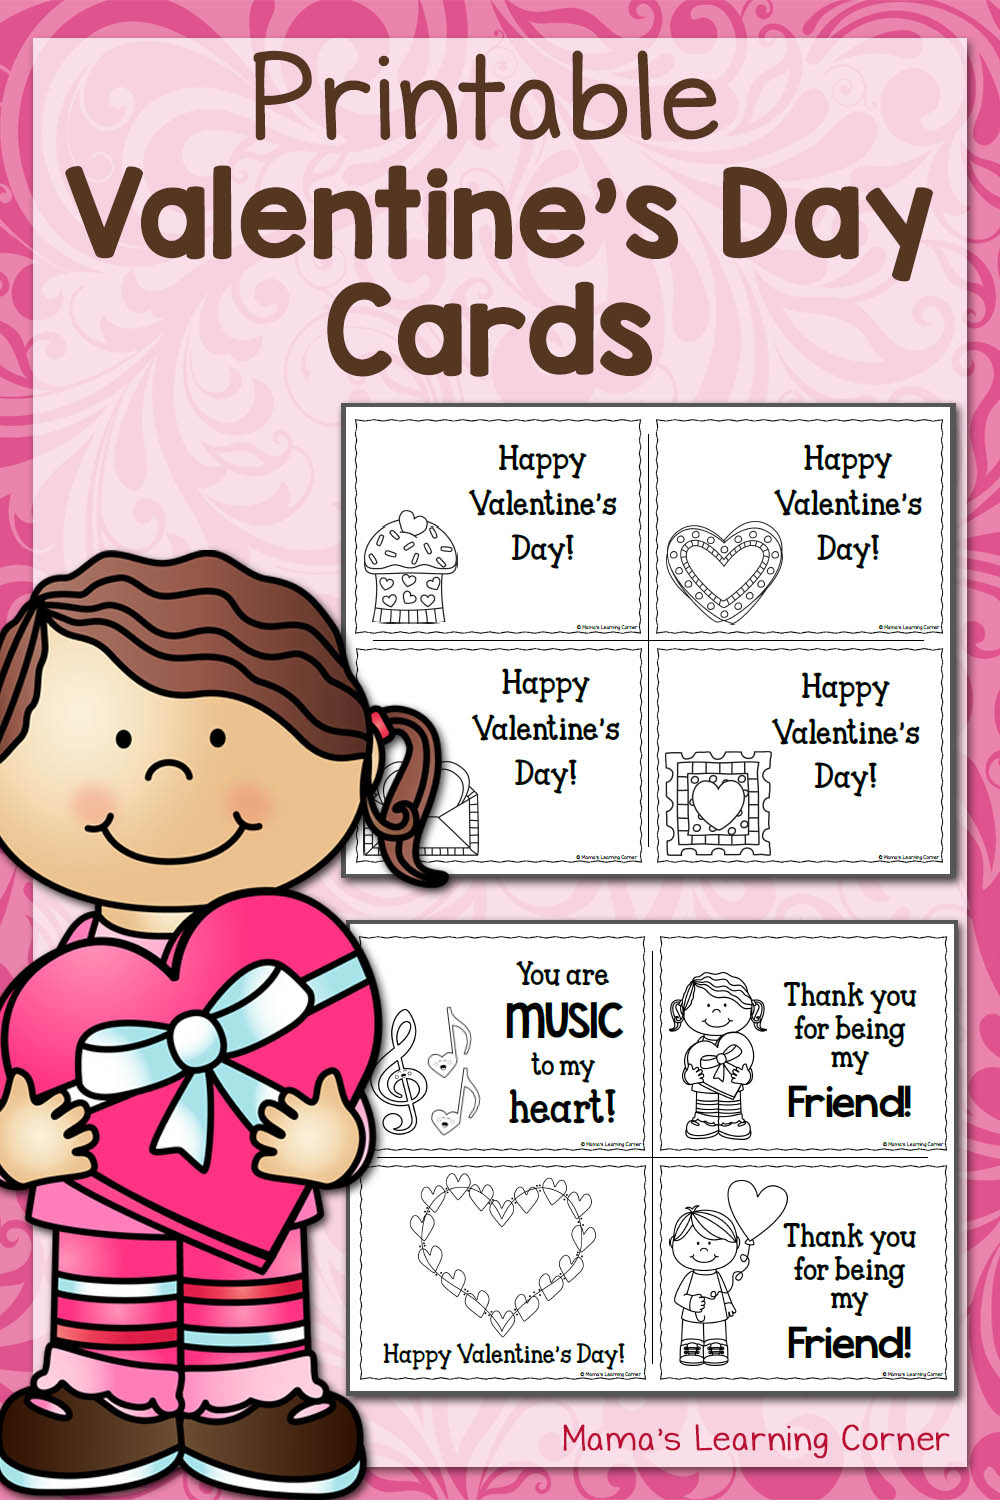 Printable Valentine's Day Cards - Mamas Learning Corner - Valentine Free Printable Cards